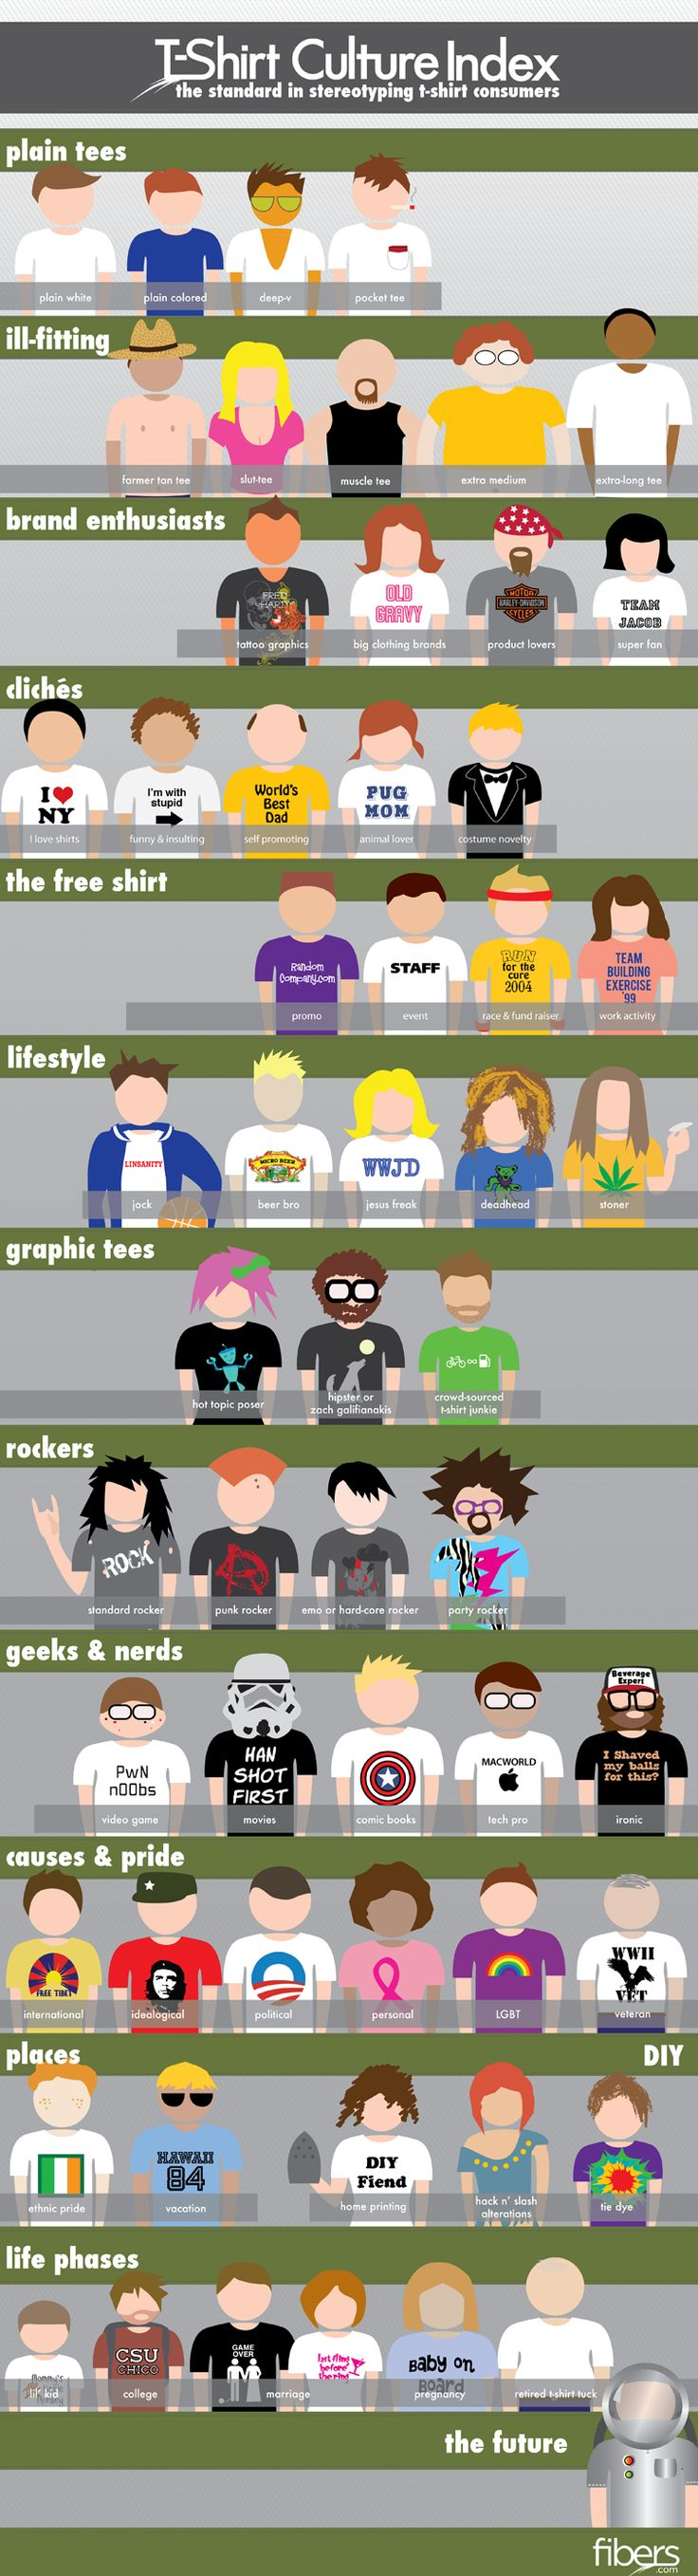 Different people gravitate toward different types of t-shirts. So we sat down and generalized and stereotyped those people into sections and came up w